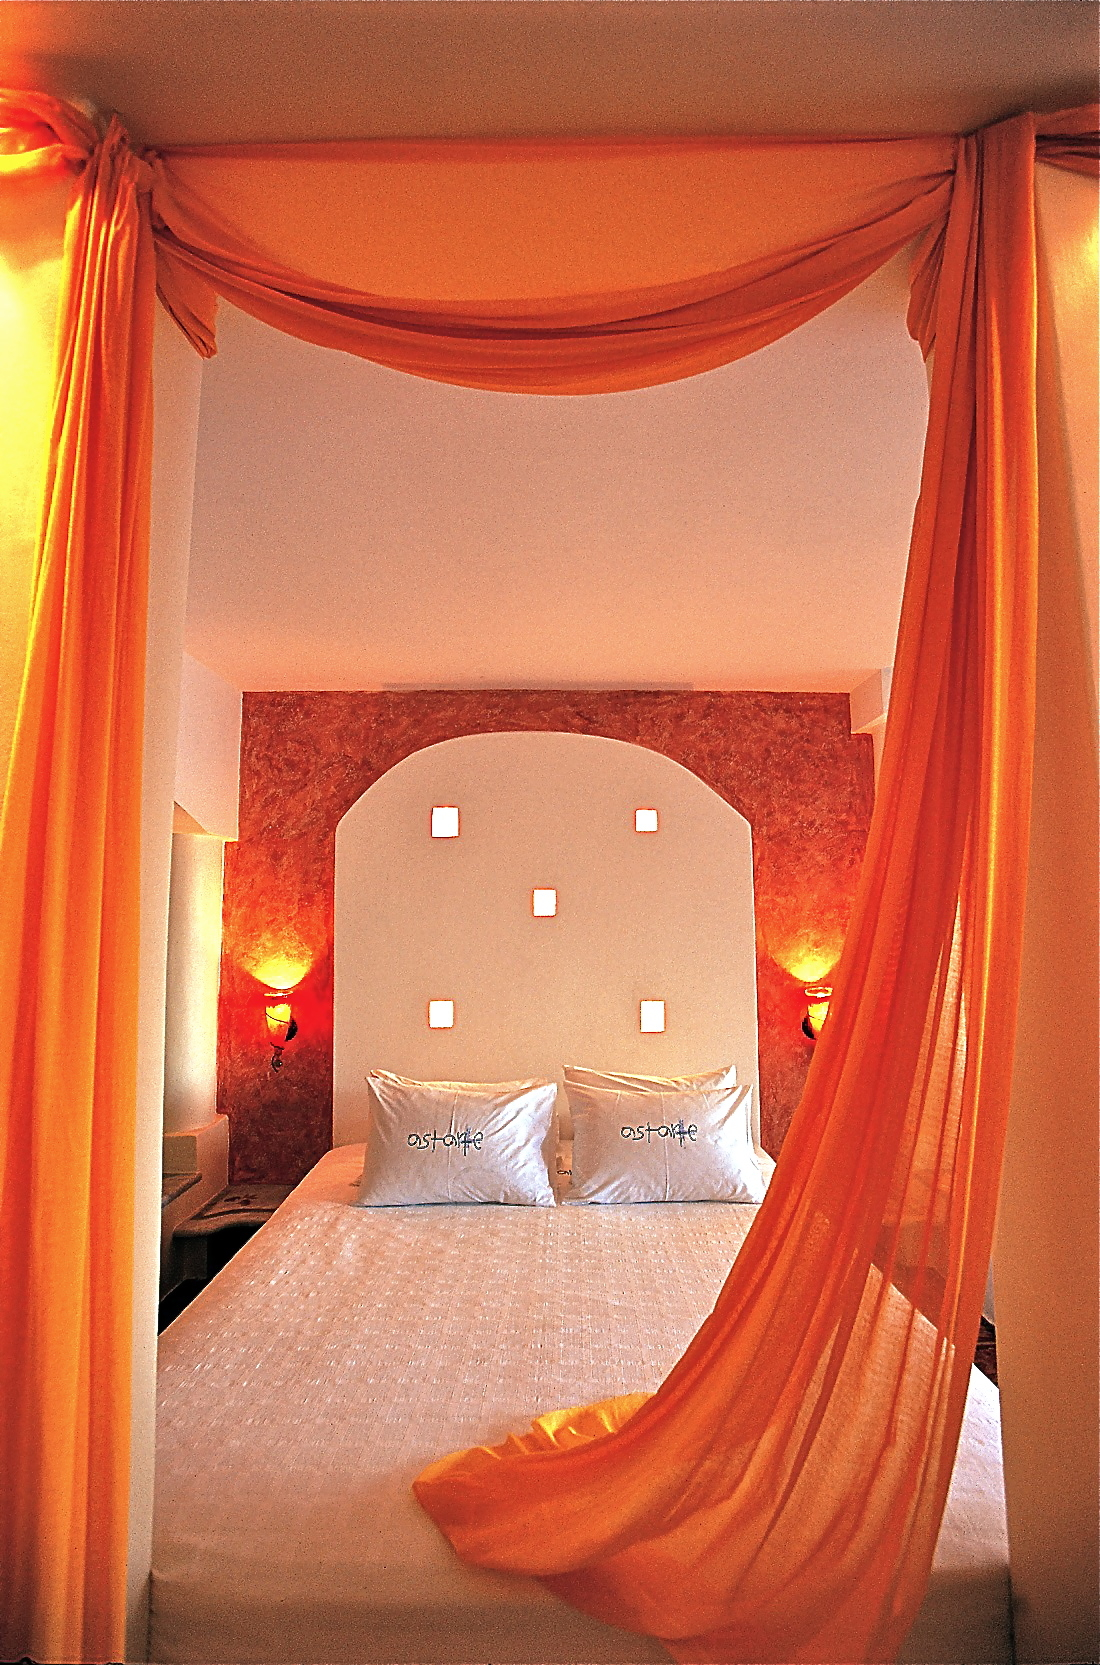 Senior Suite Luxury Santorini Astarte Suites